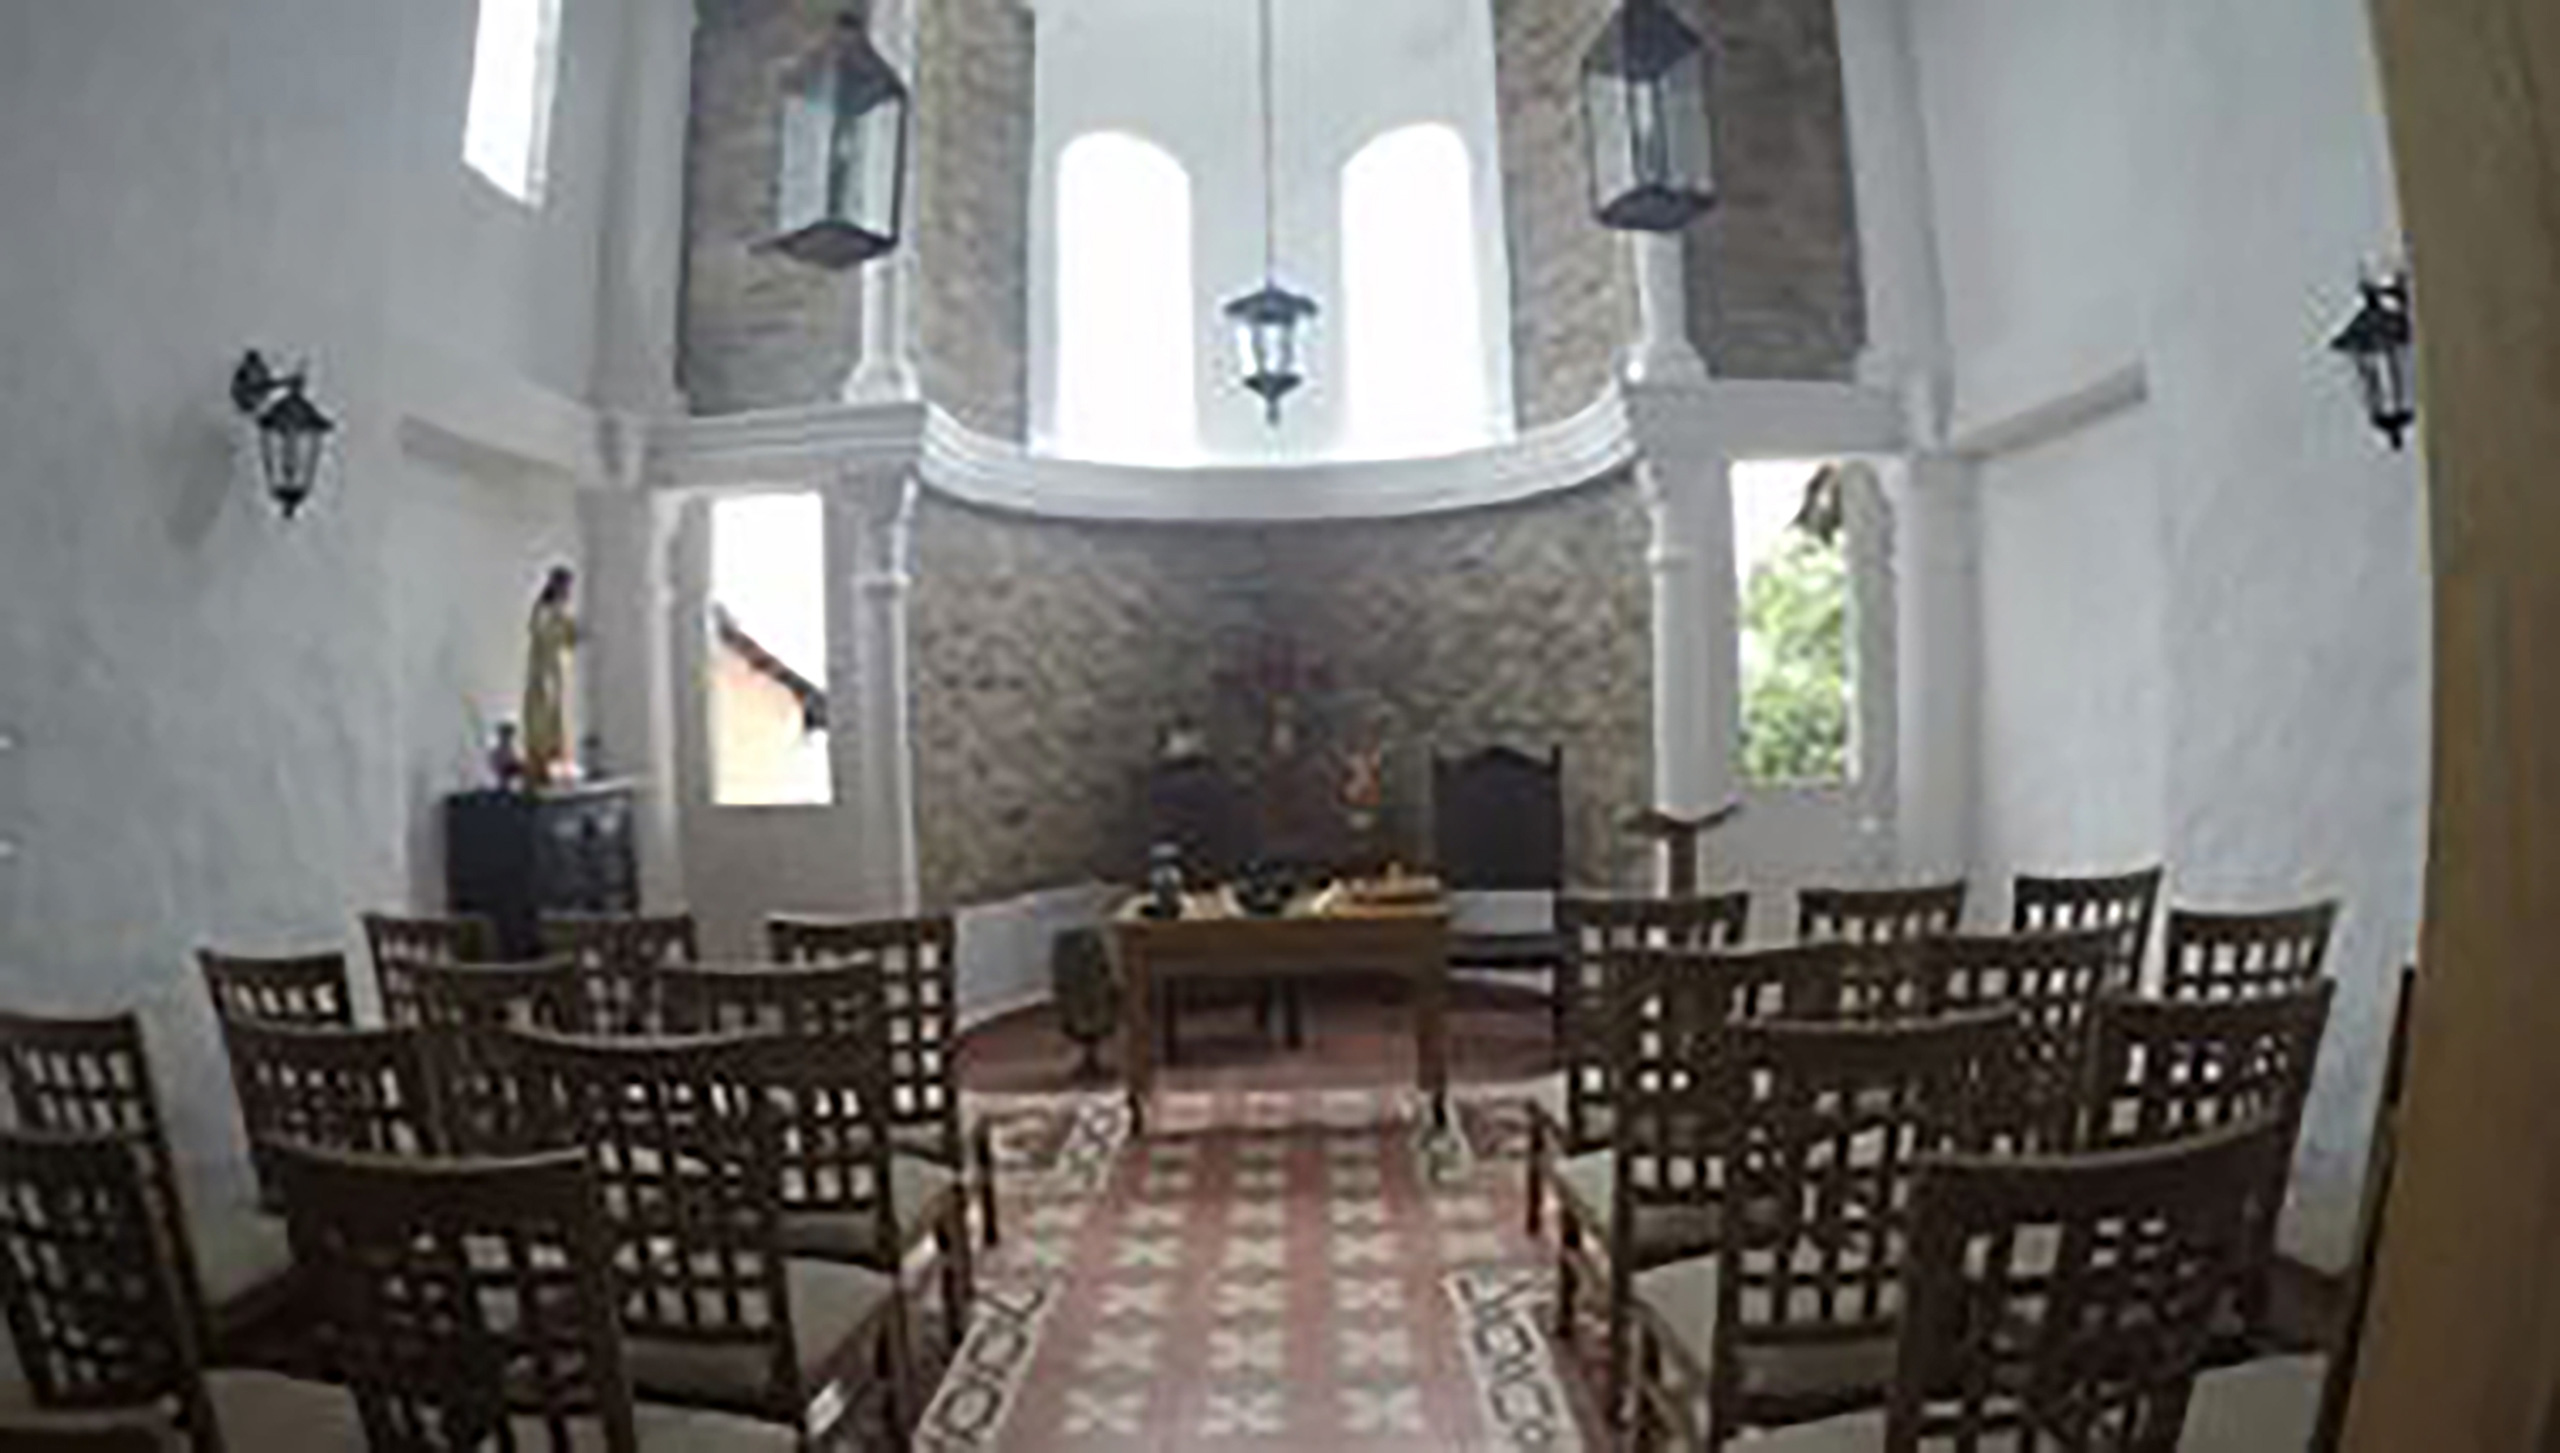 A chapel in a long skinny room with chairs. At the front of the room is a table with objects on them and a statue of Jesus